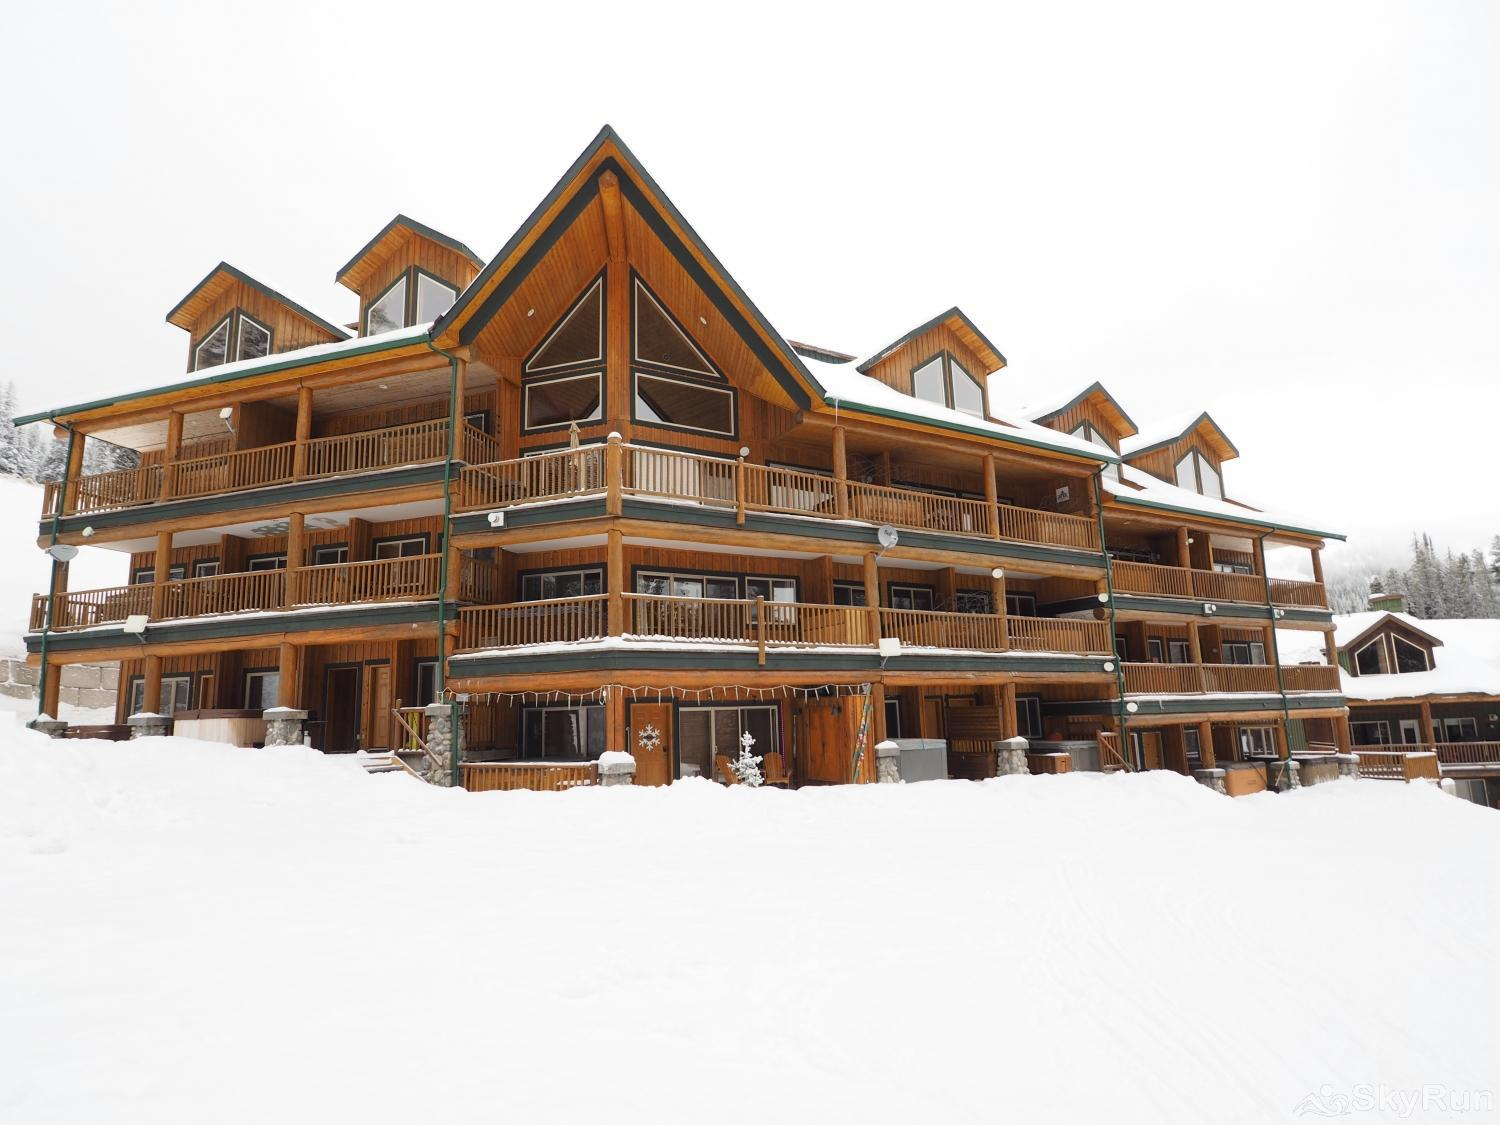 Silver Bullet 1 bedroom with hot tub The Silver Bullet - A true Ski in/ski out property